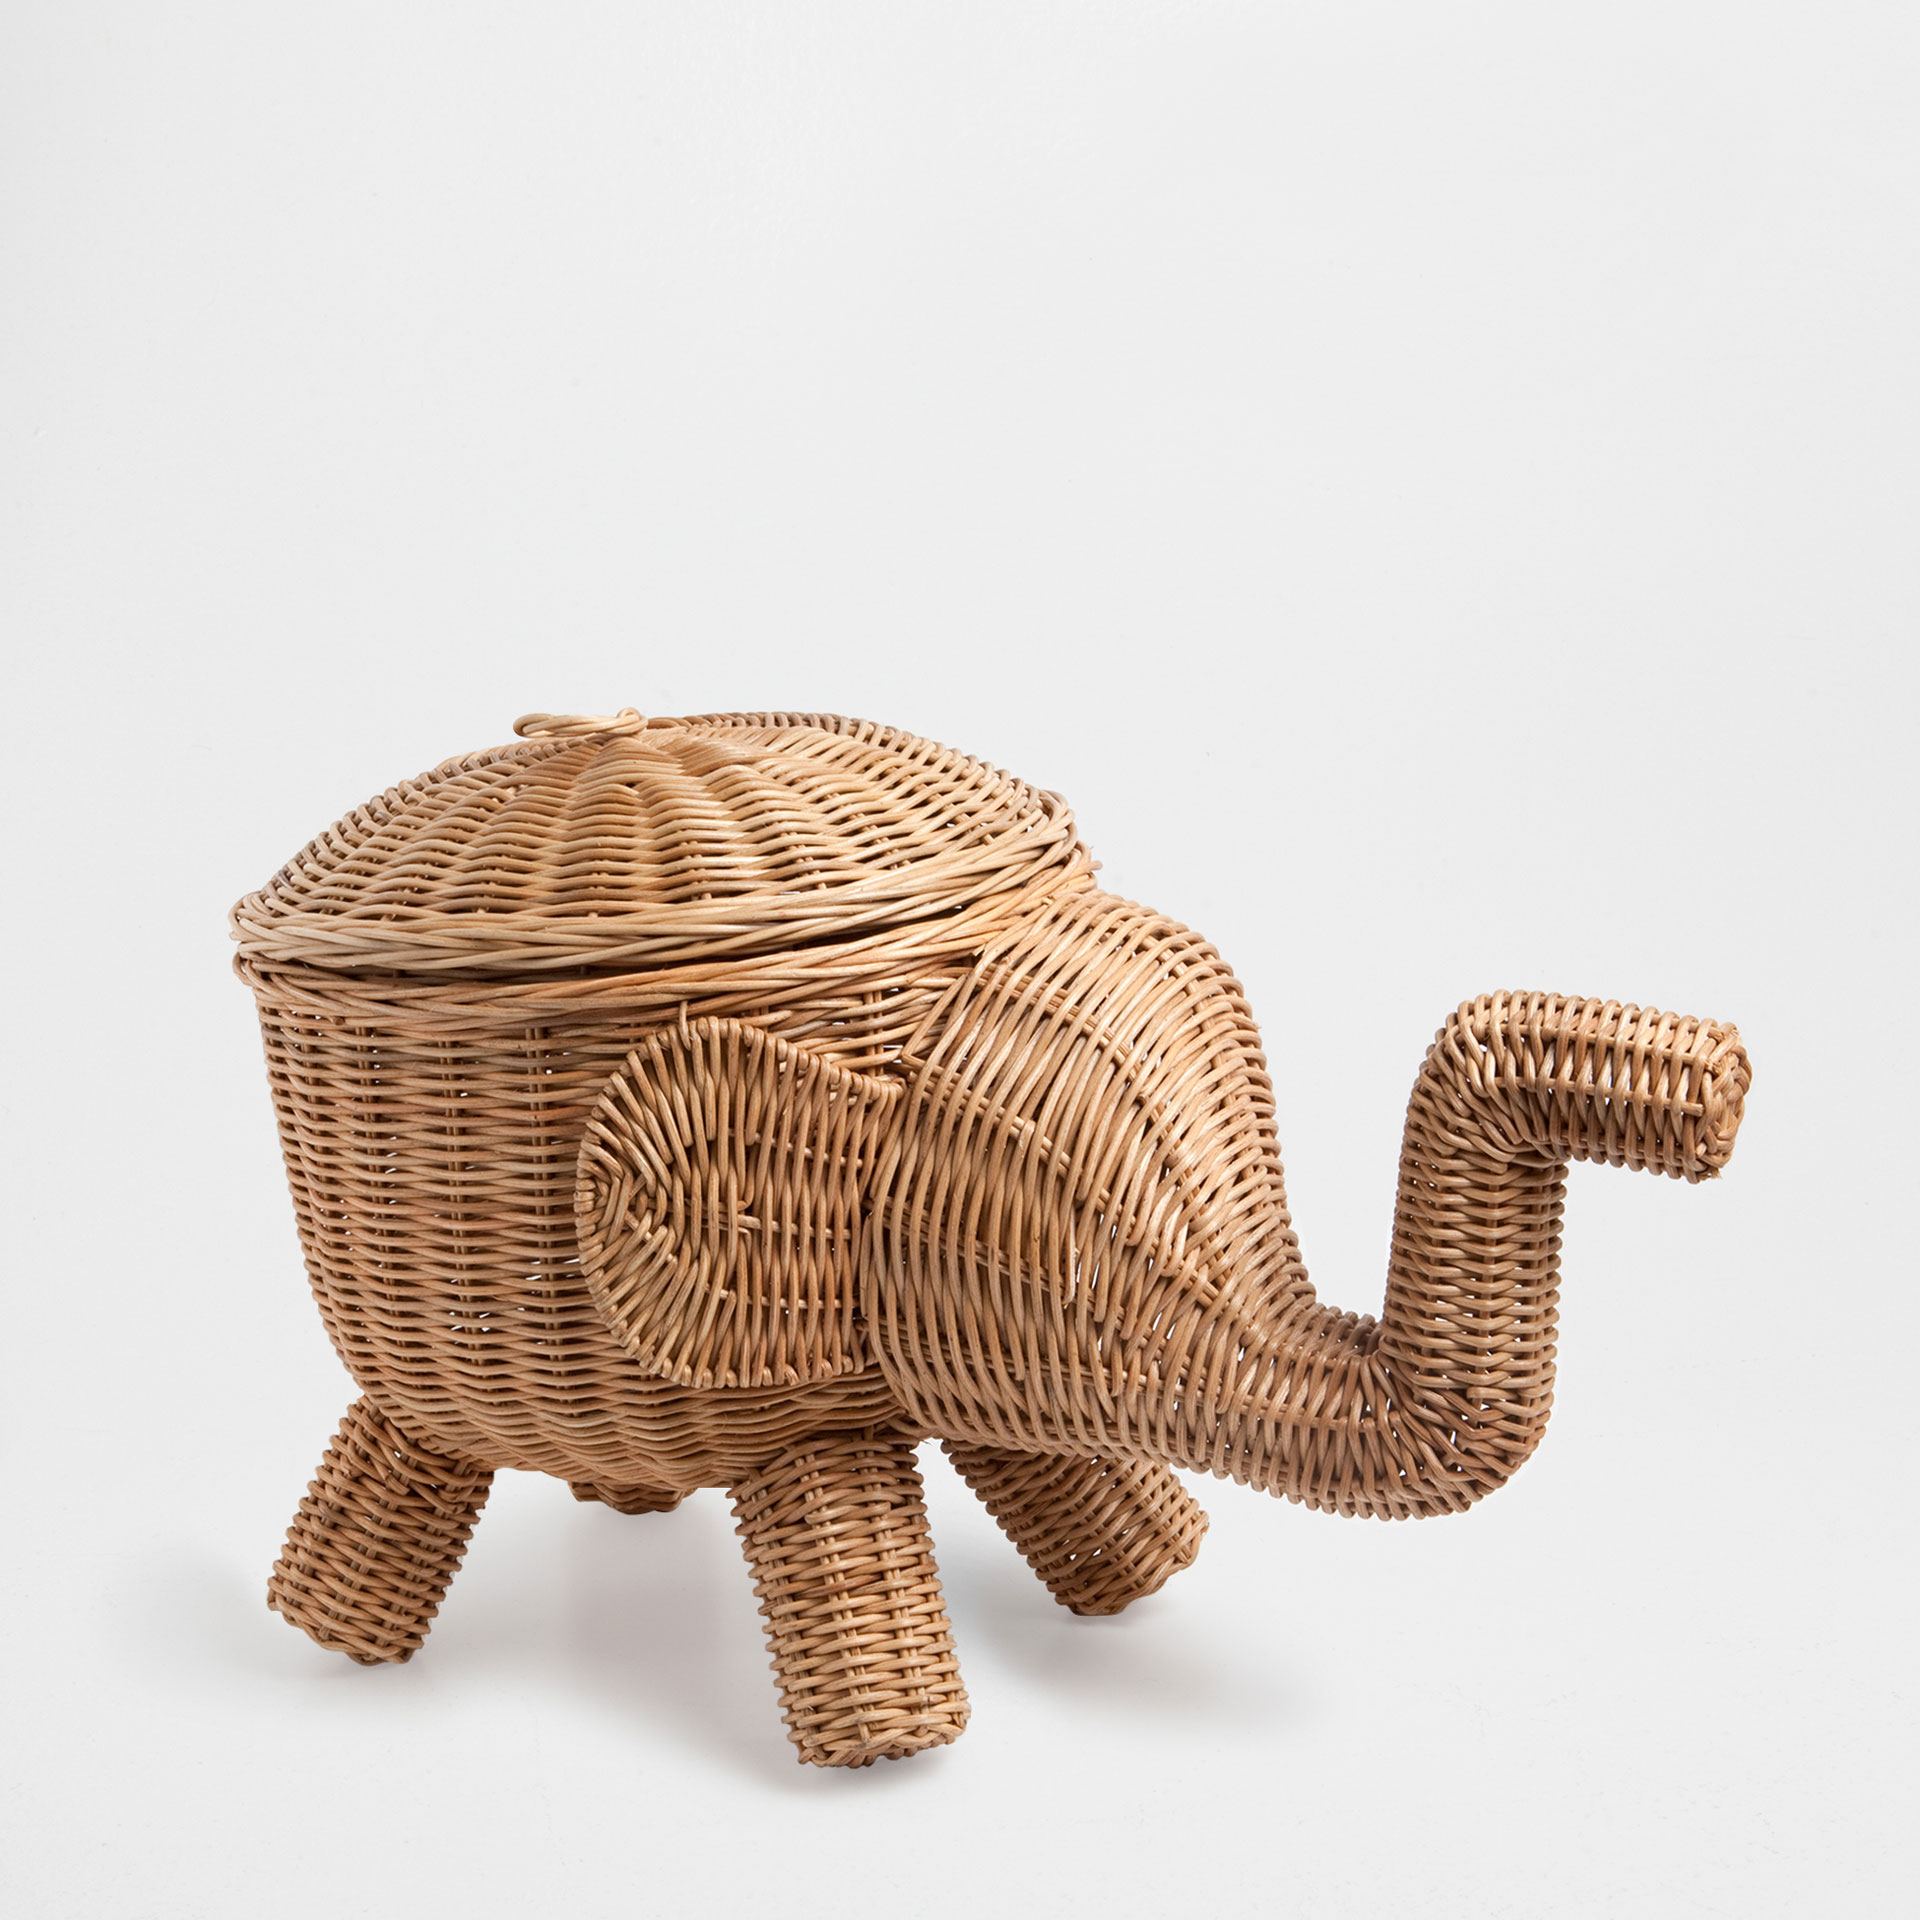 + Image 1 Of The Product Elephantshaped Basket